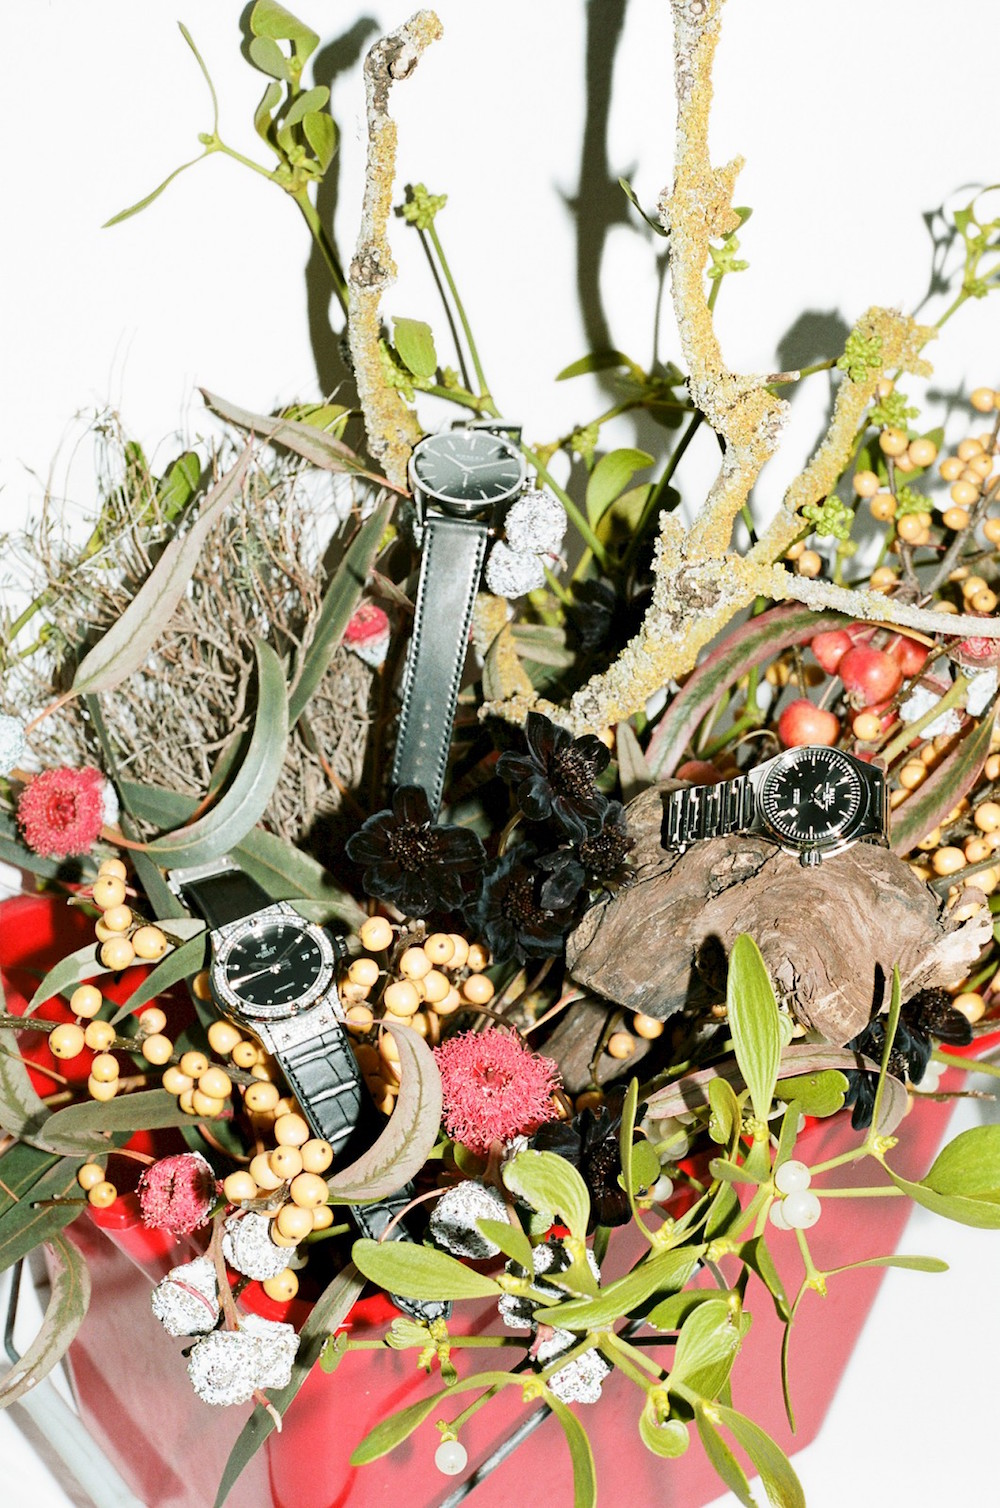 photo photos photography photgrapher photographers floral arrangement botanical watch watches wristwatch jewelry leaves leaf branch branches flower flowers moss rock rocks